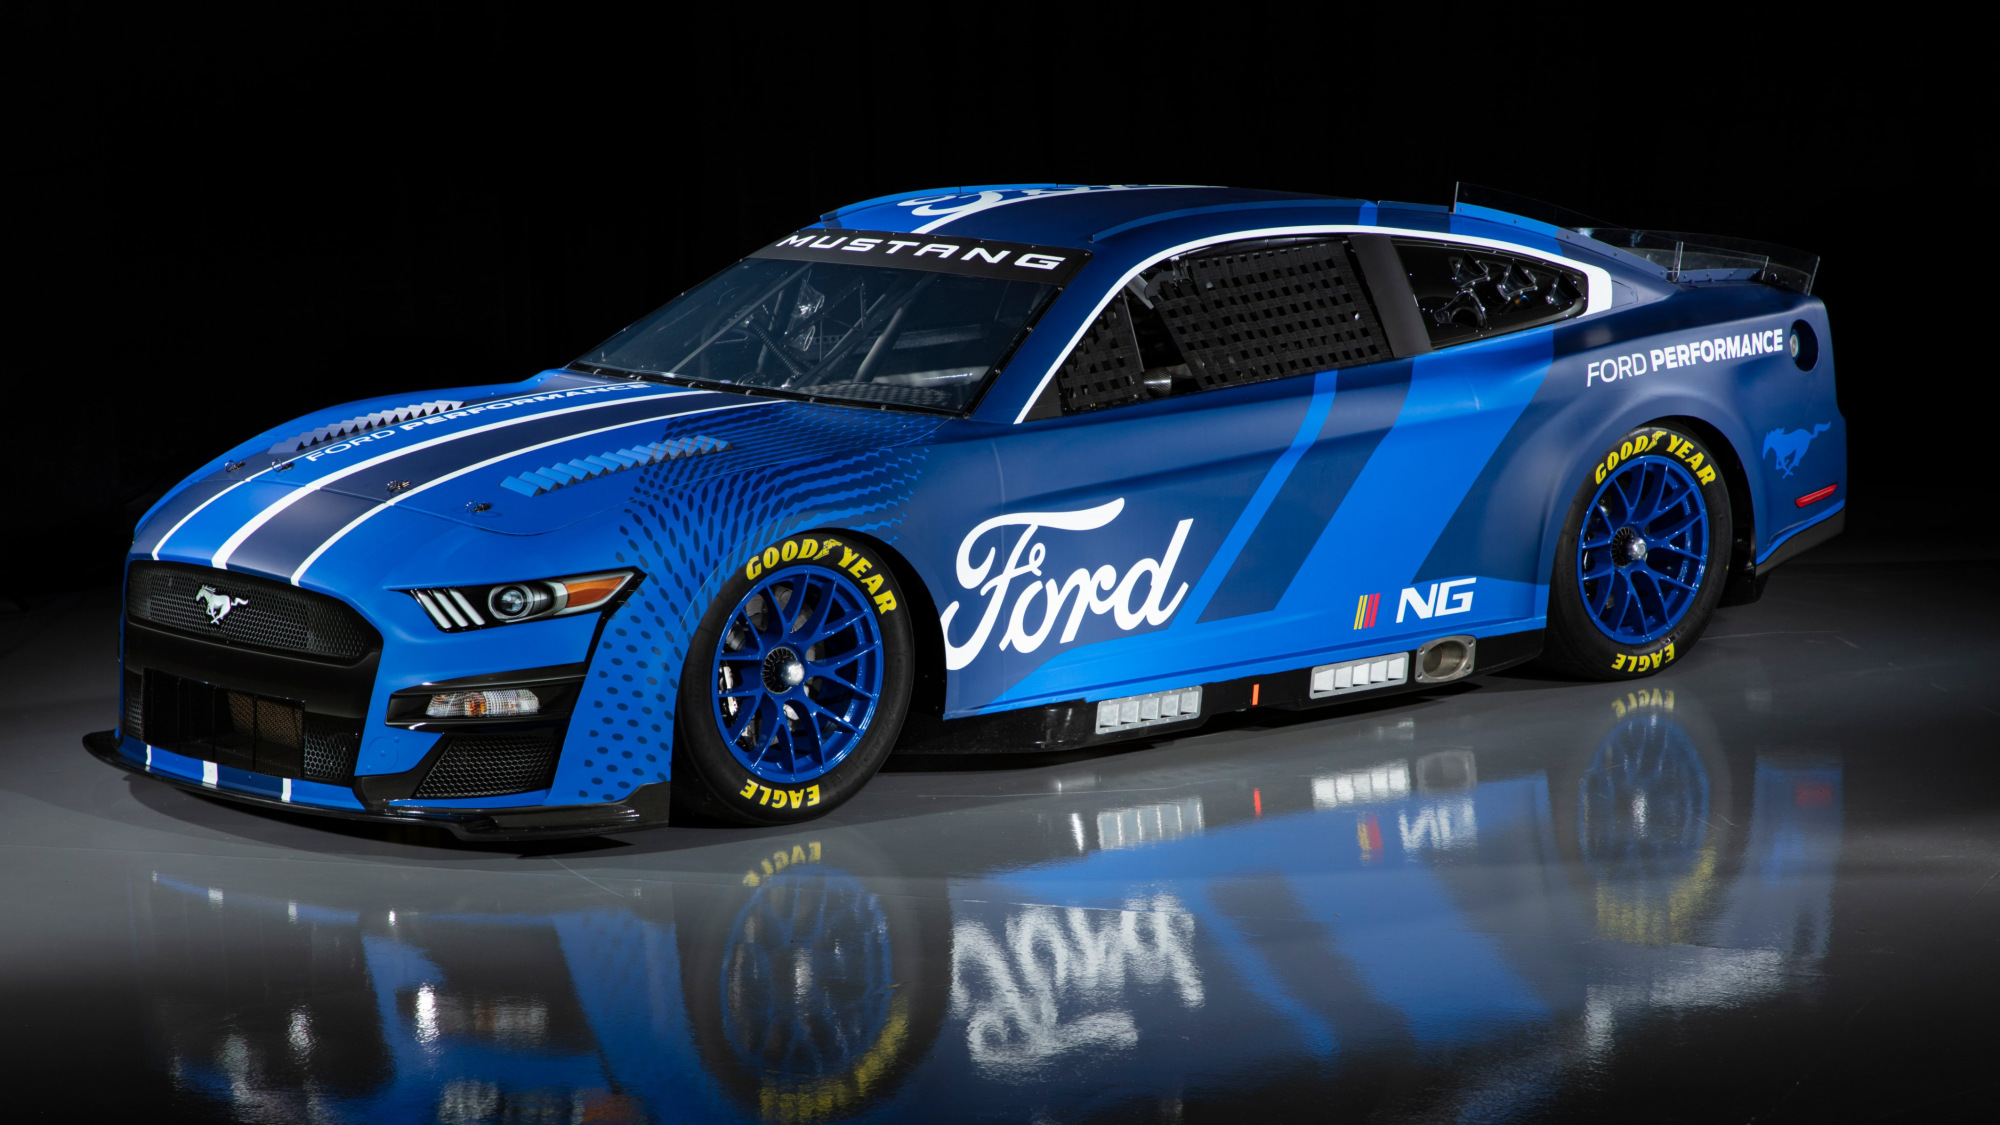 NASCAR unveils Next Gen Camaro, Mustang and Camry for 2022 season